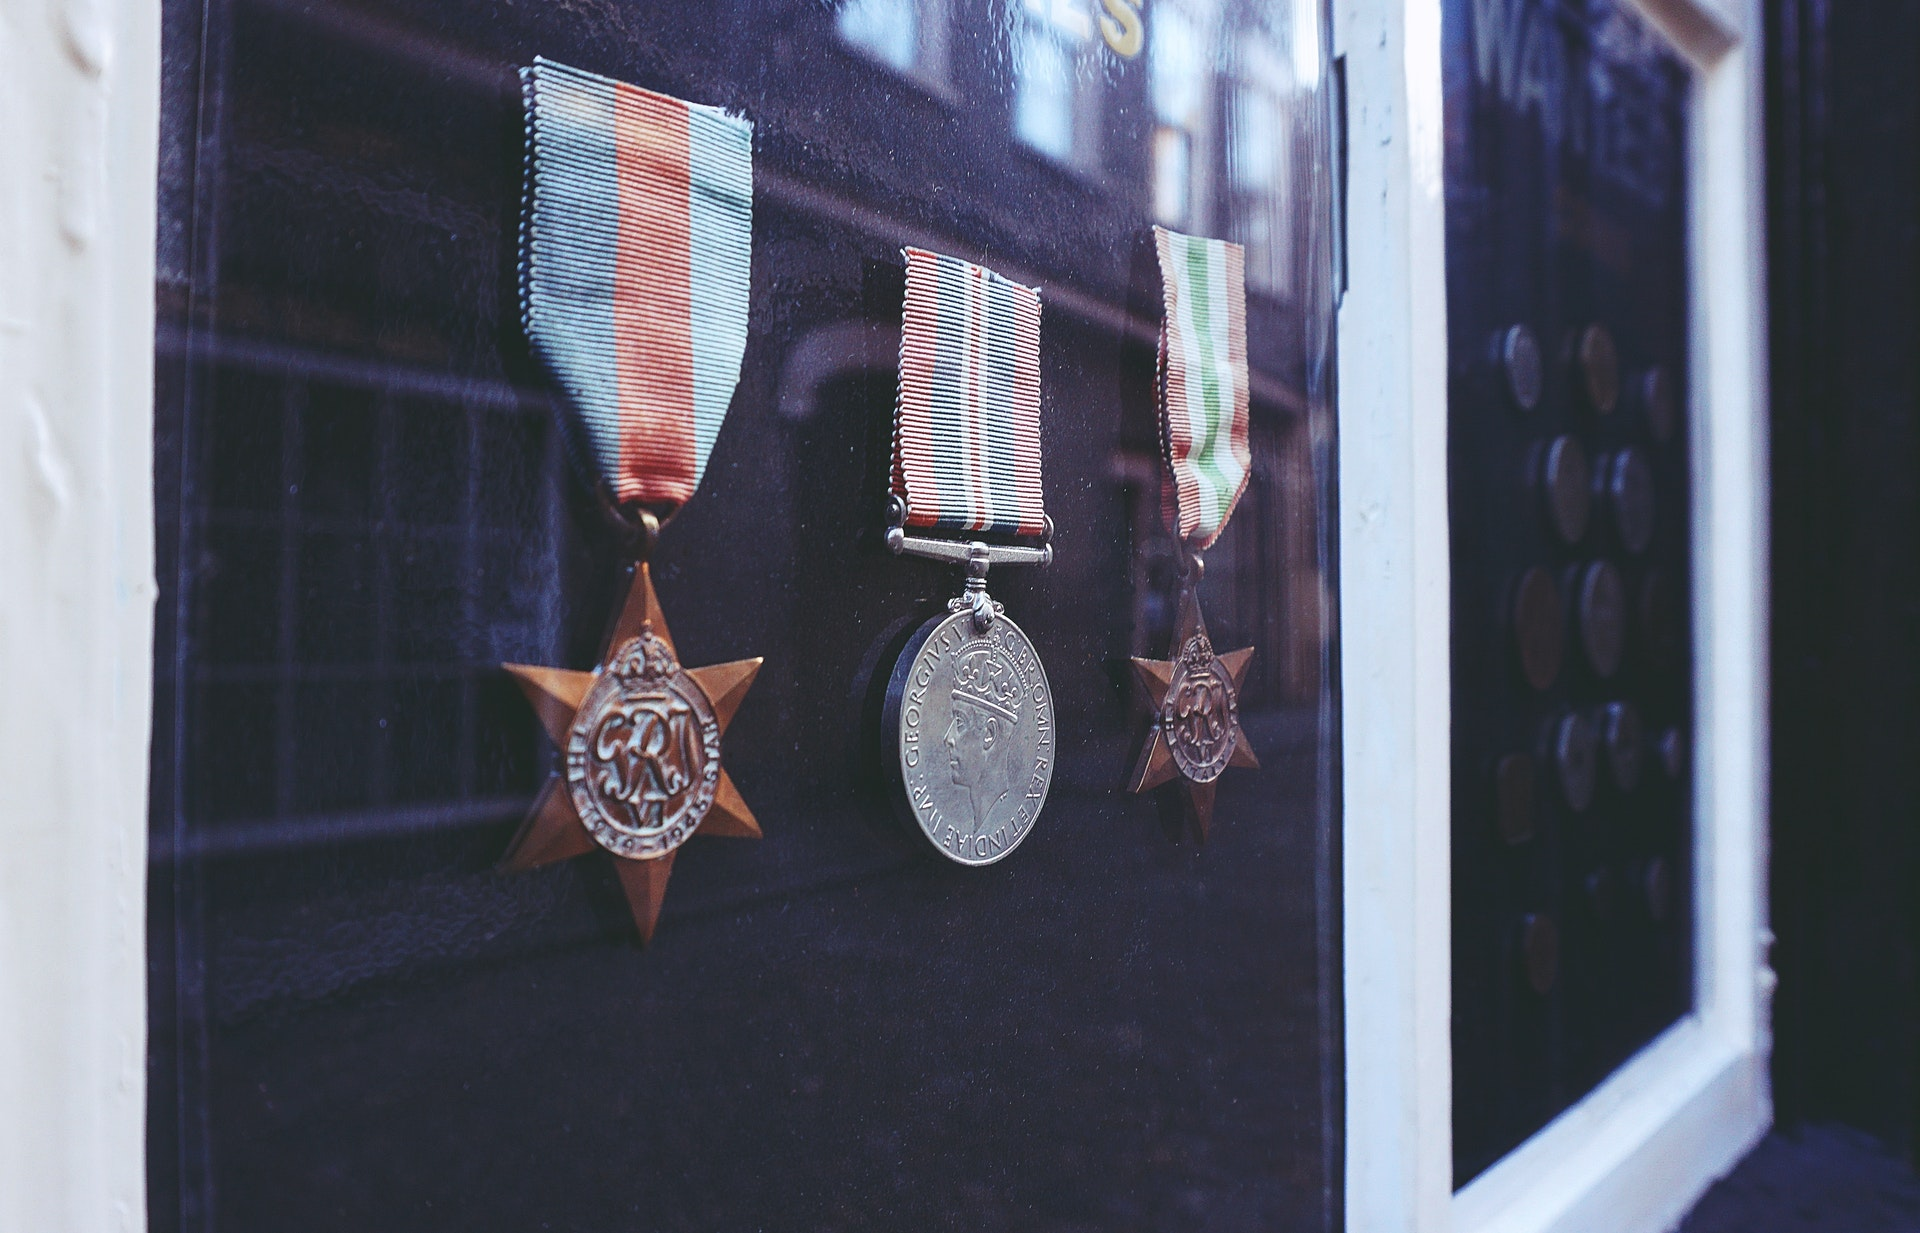 What's The Meaning Behind Military Medals?